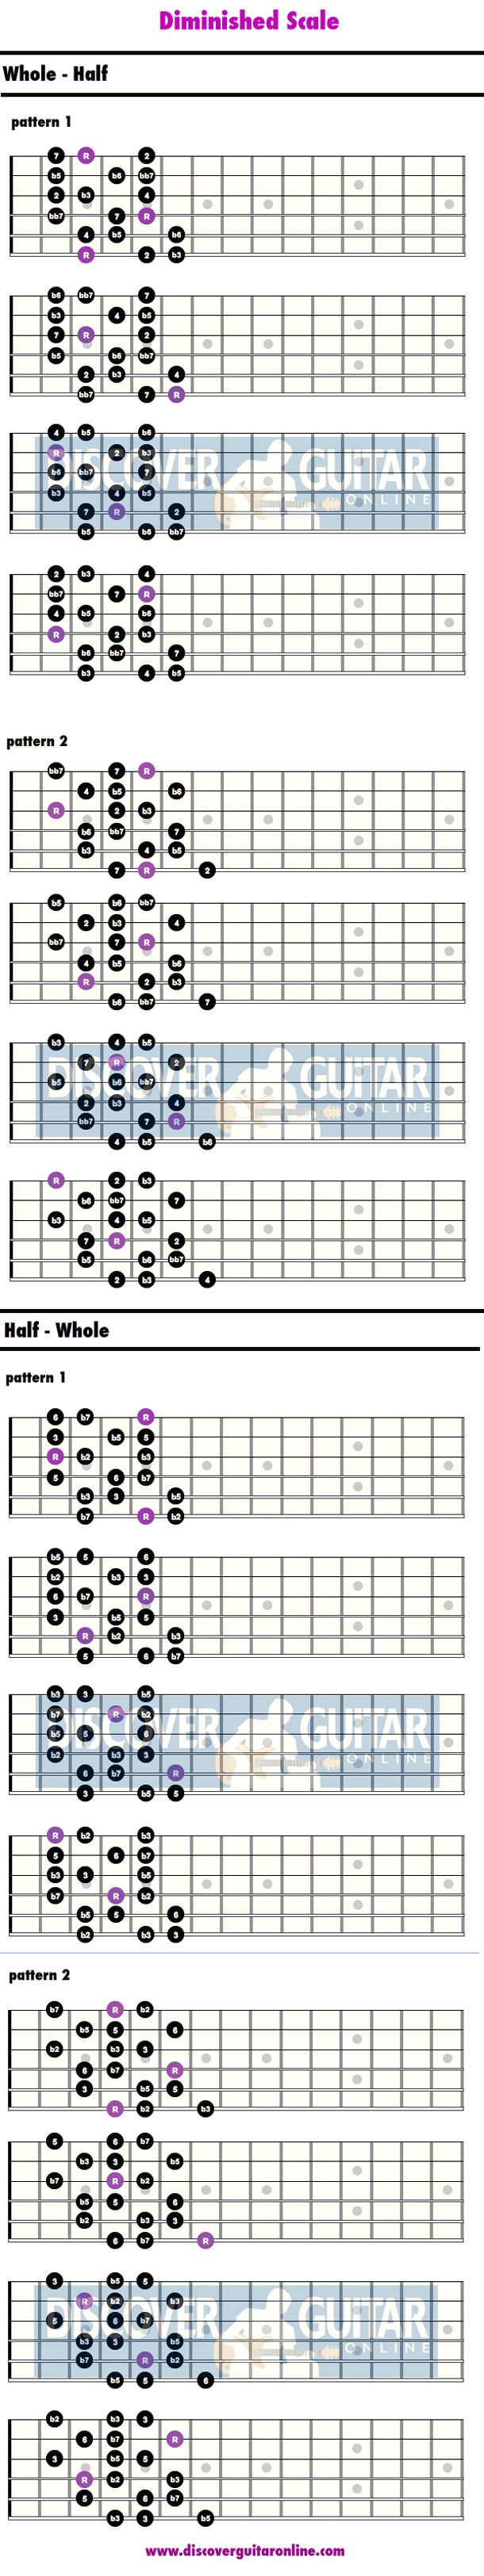 Whats the best Online Blues Guitar Course? - Ultimate Guitar